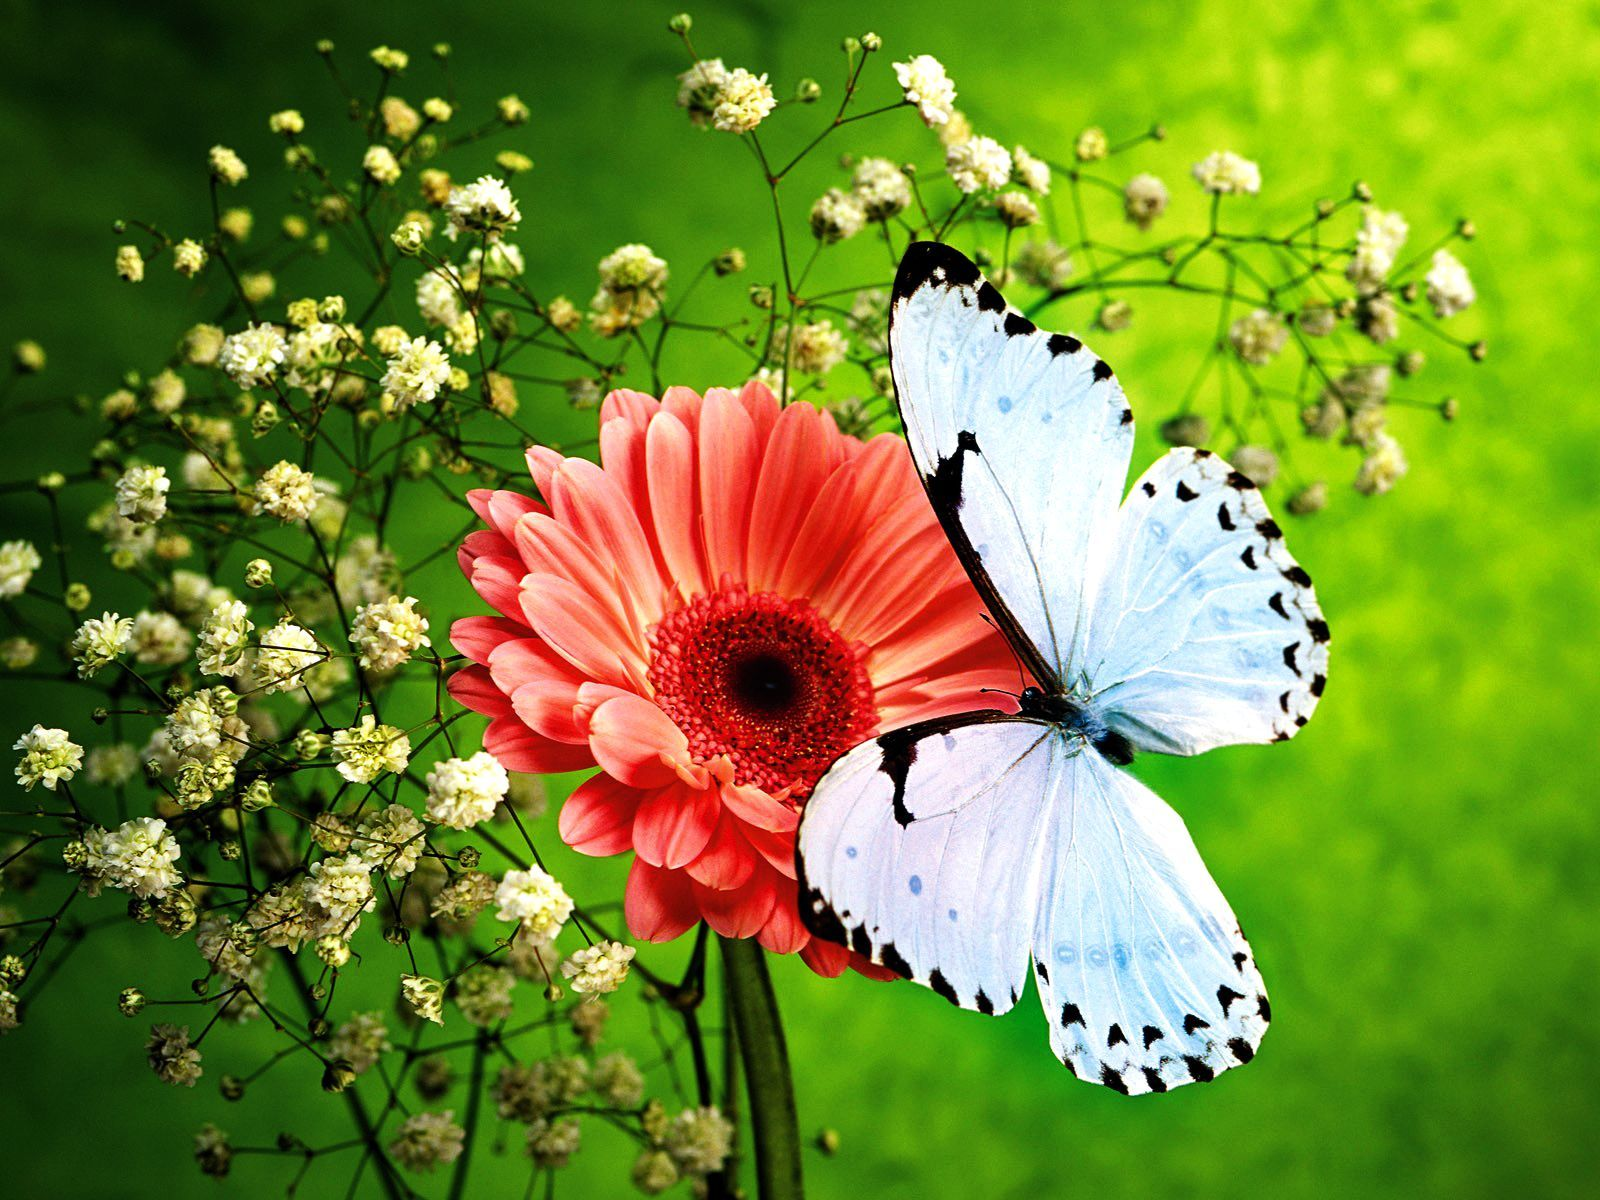 Flowers and Butterflies | Pink Flower and Beautiful Blue Butterfly ...